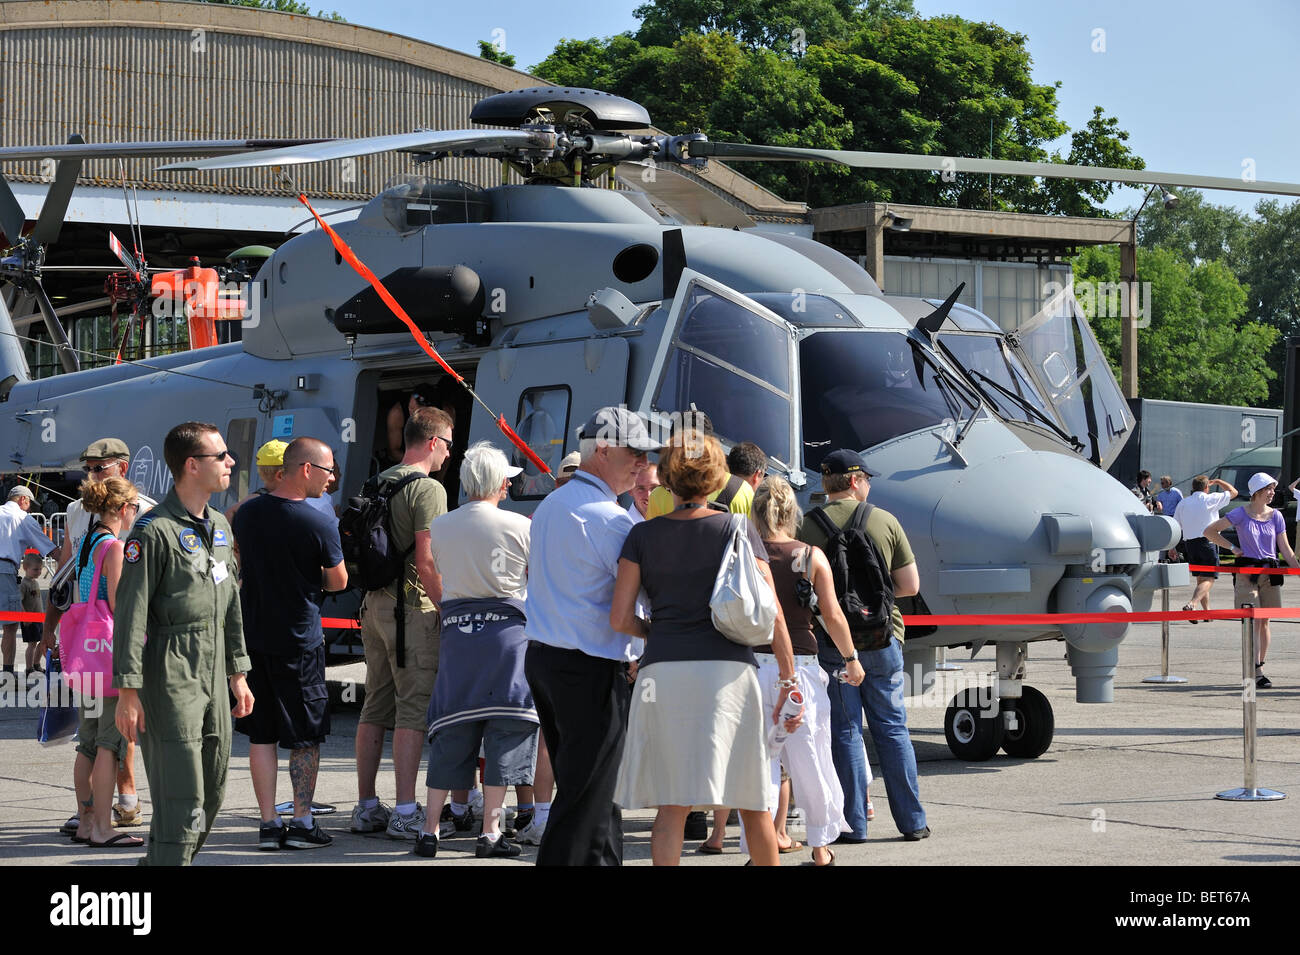 Military Lynx helicopter at airshow in Koksijde, Belgium - Stock Image